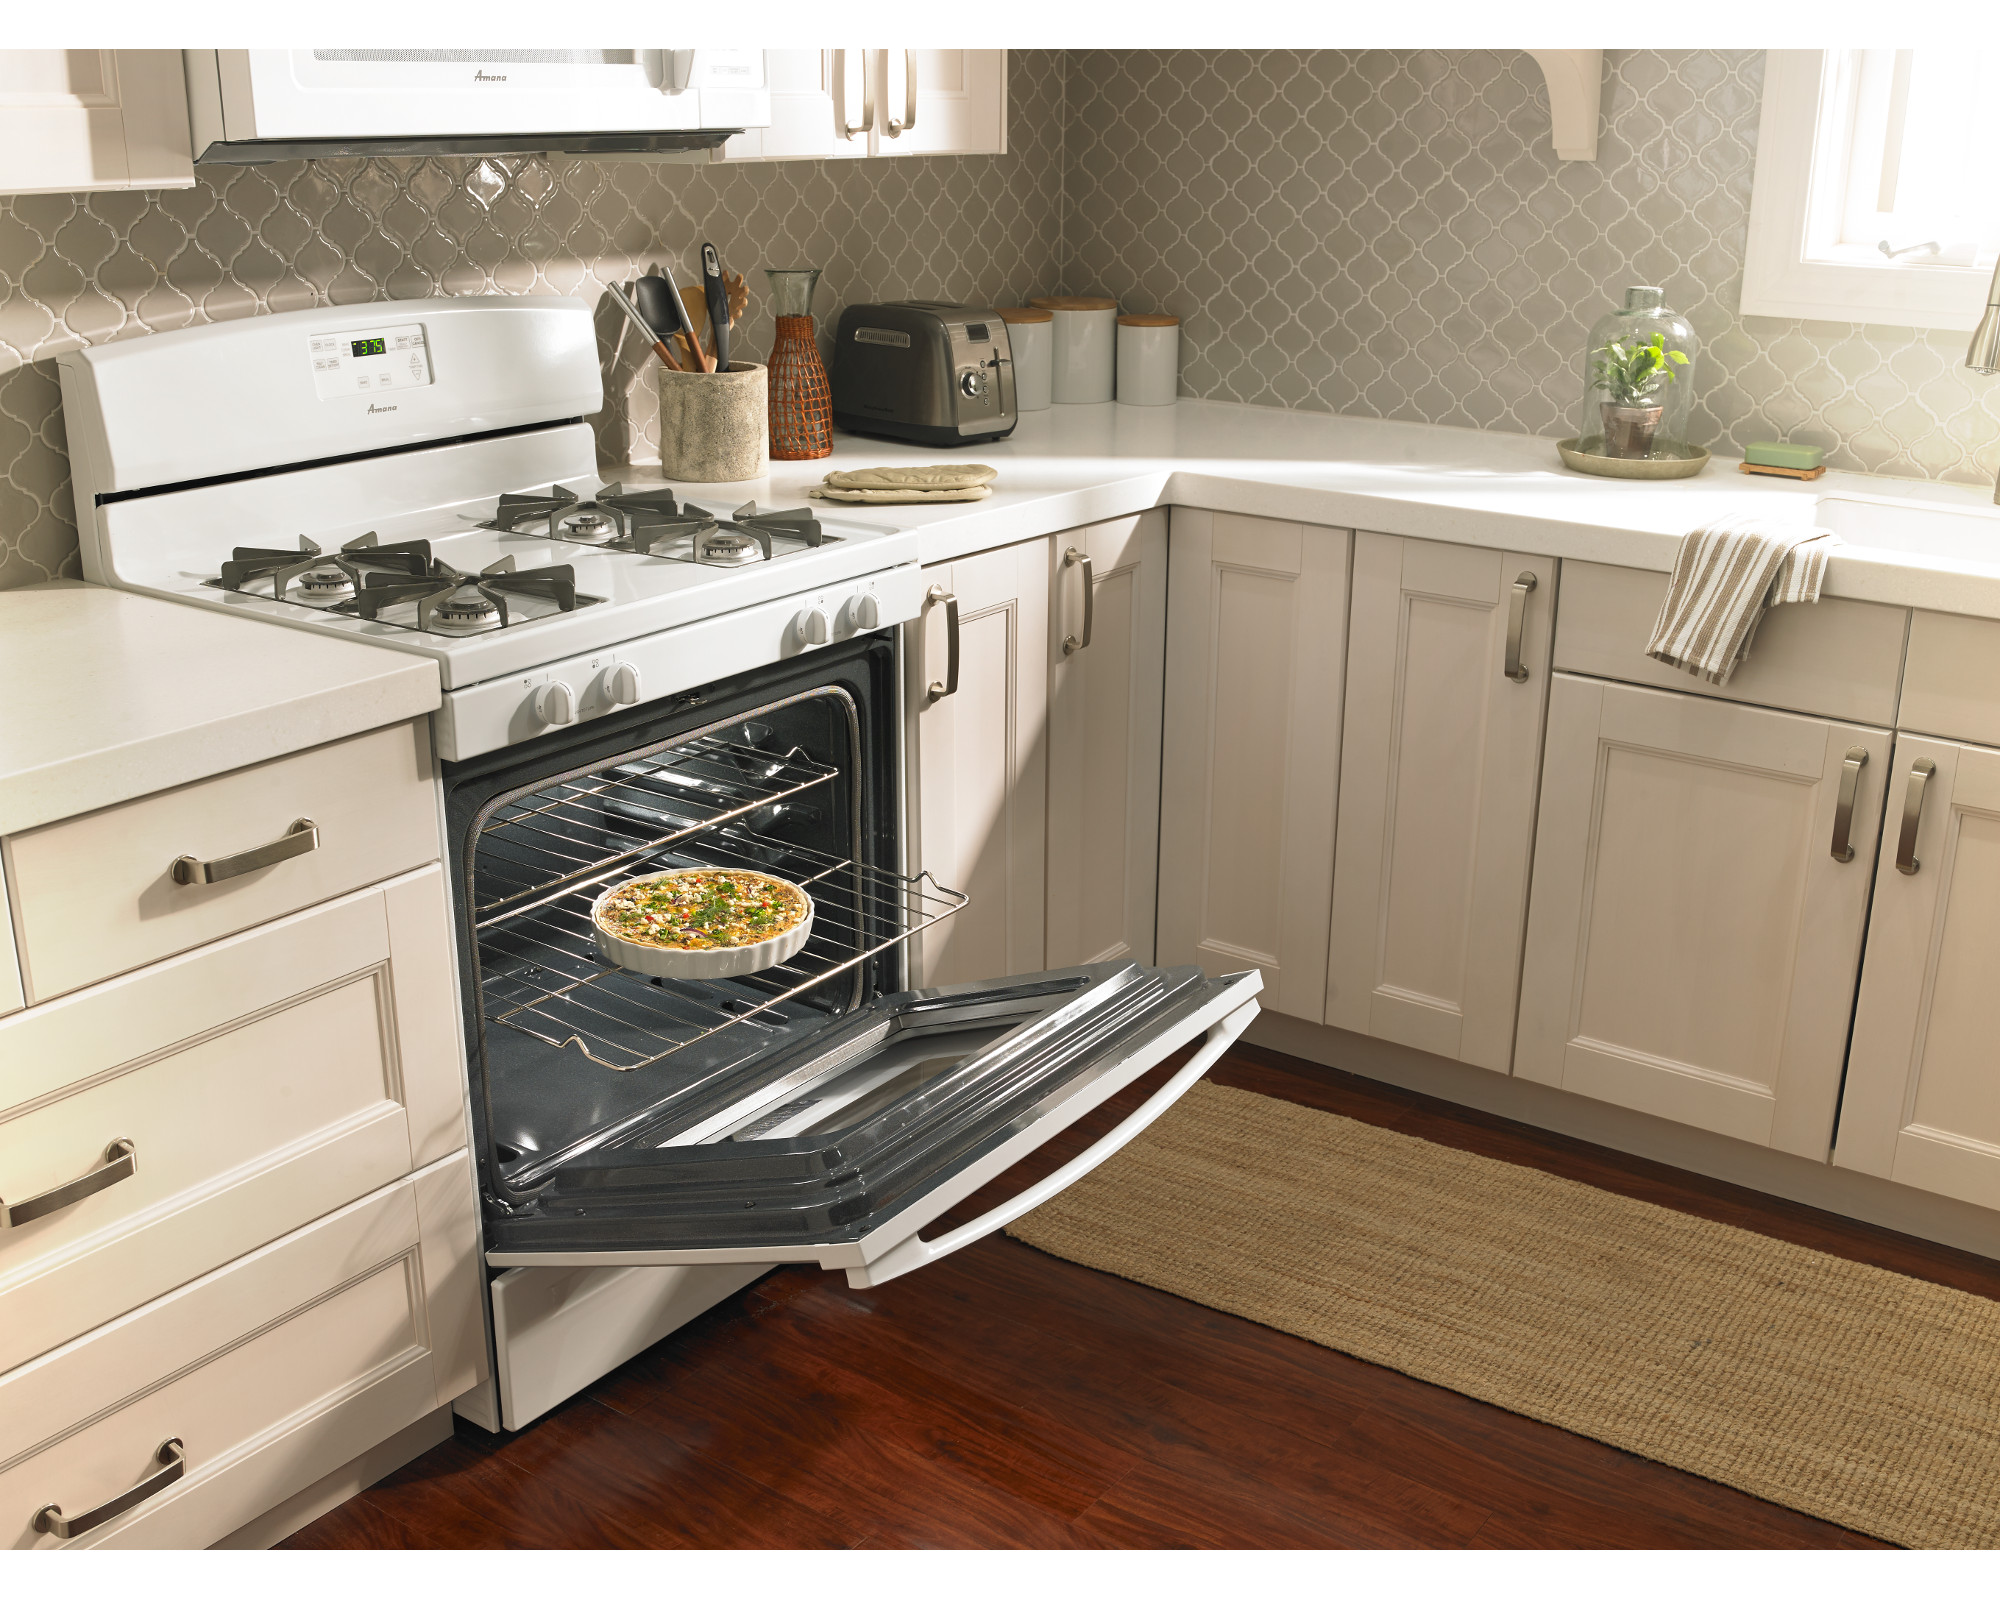 Amana 5.0 cu. ft. Gas Range - White